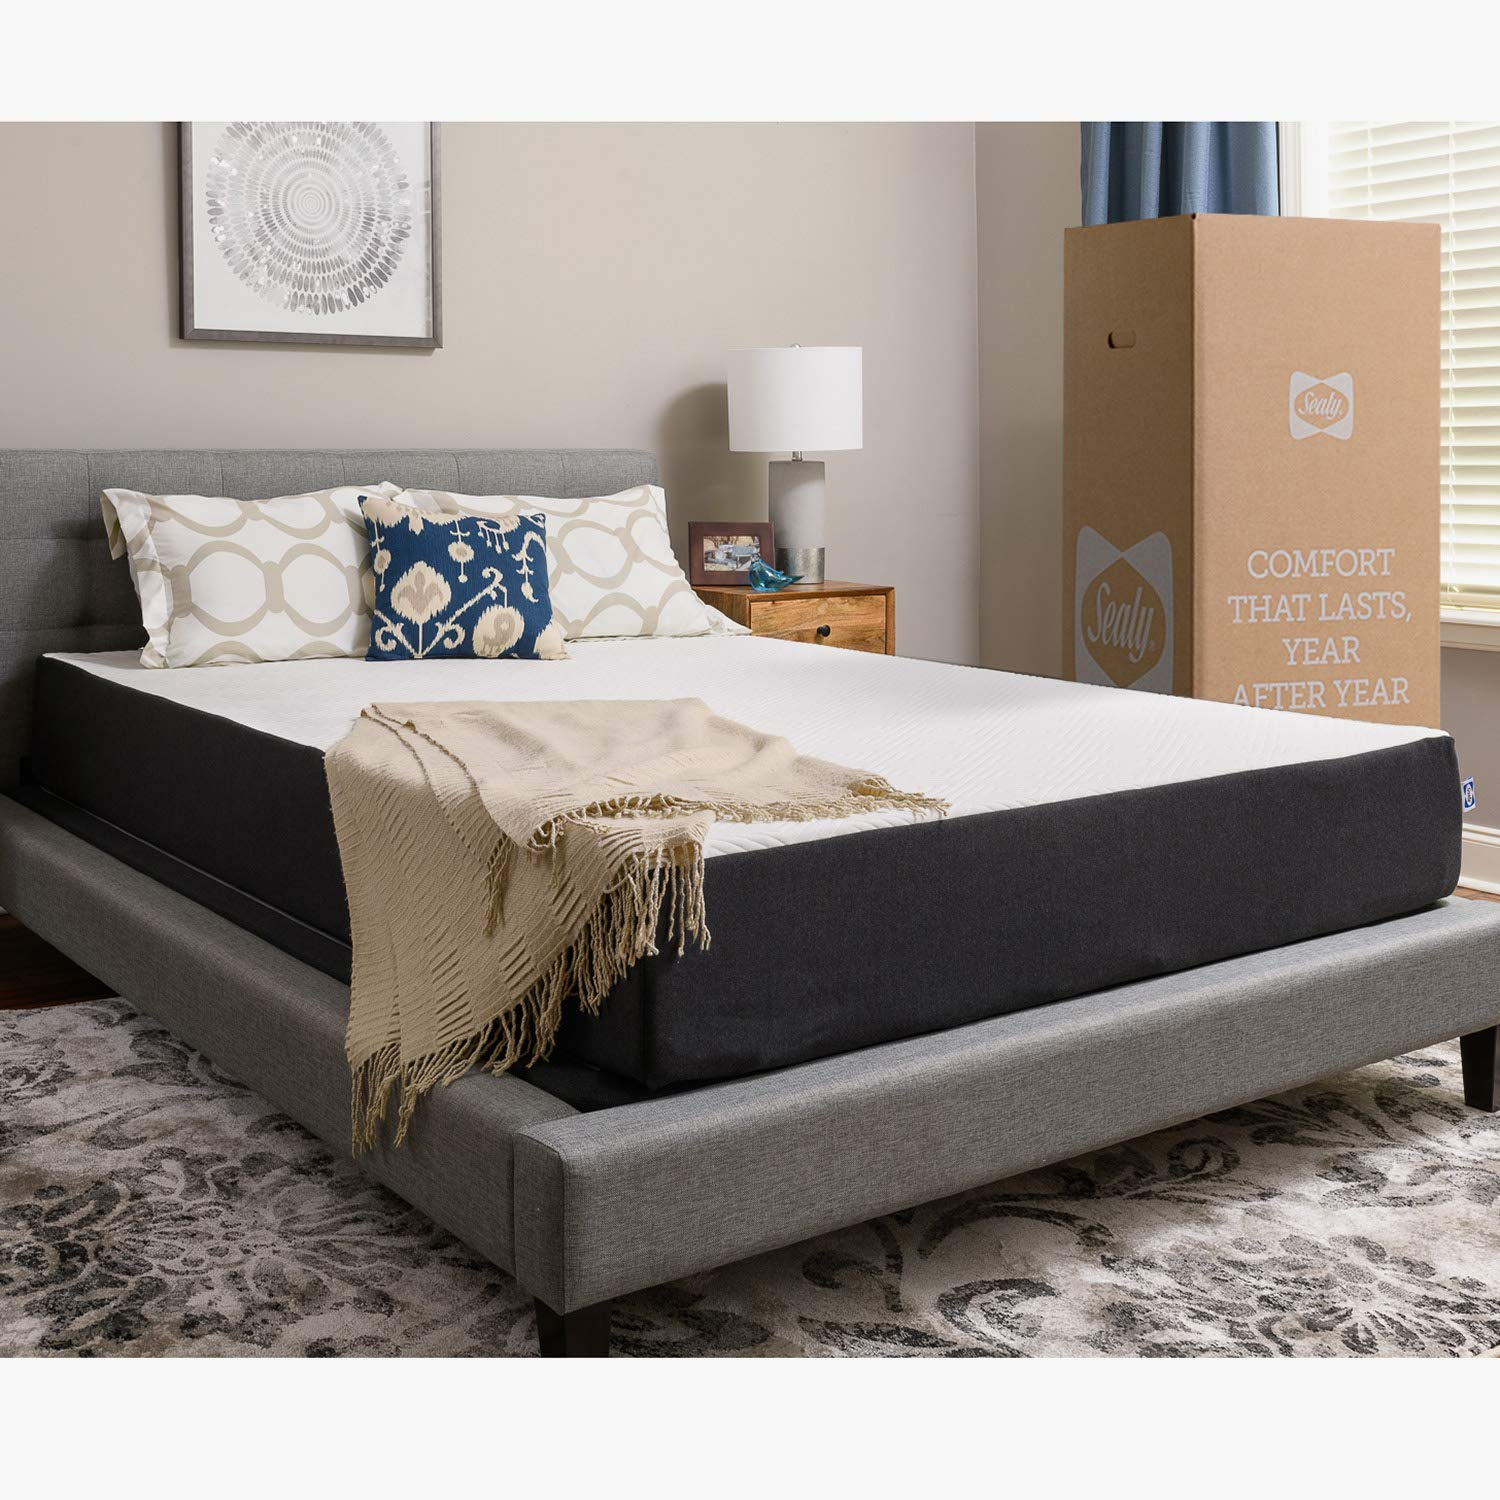 Sealy 10 inch mattress in a box